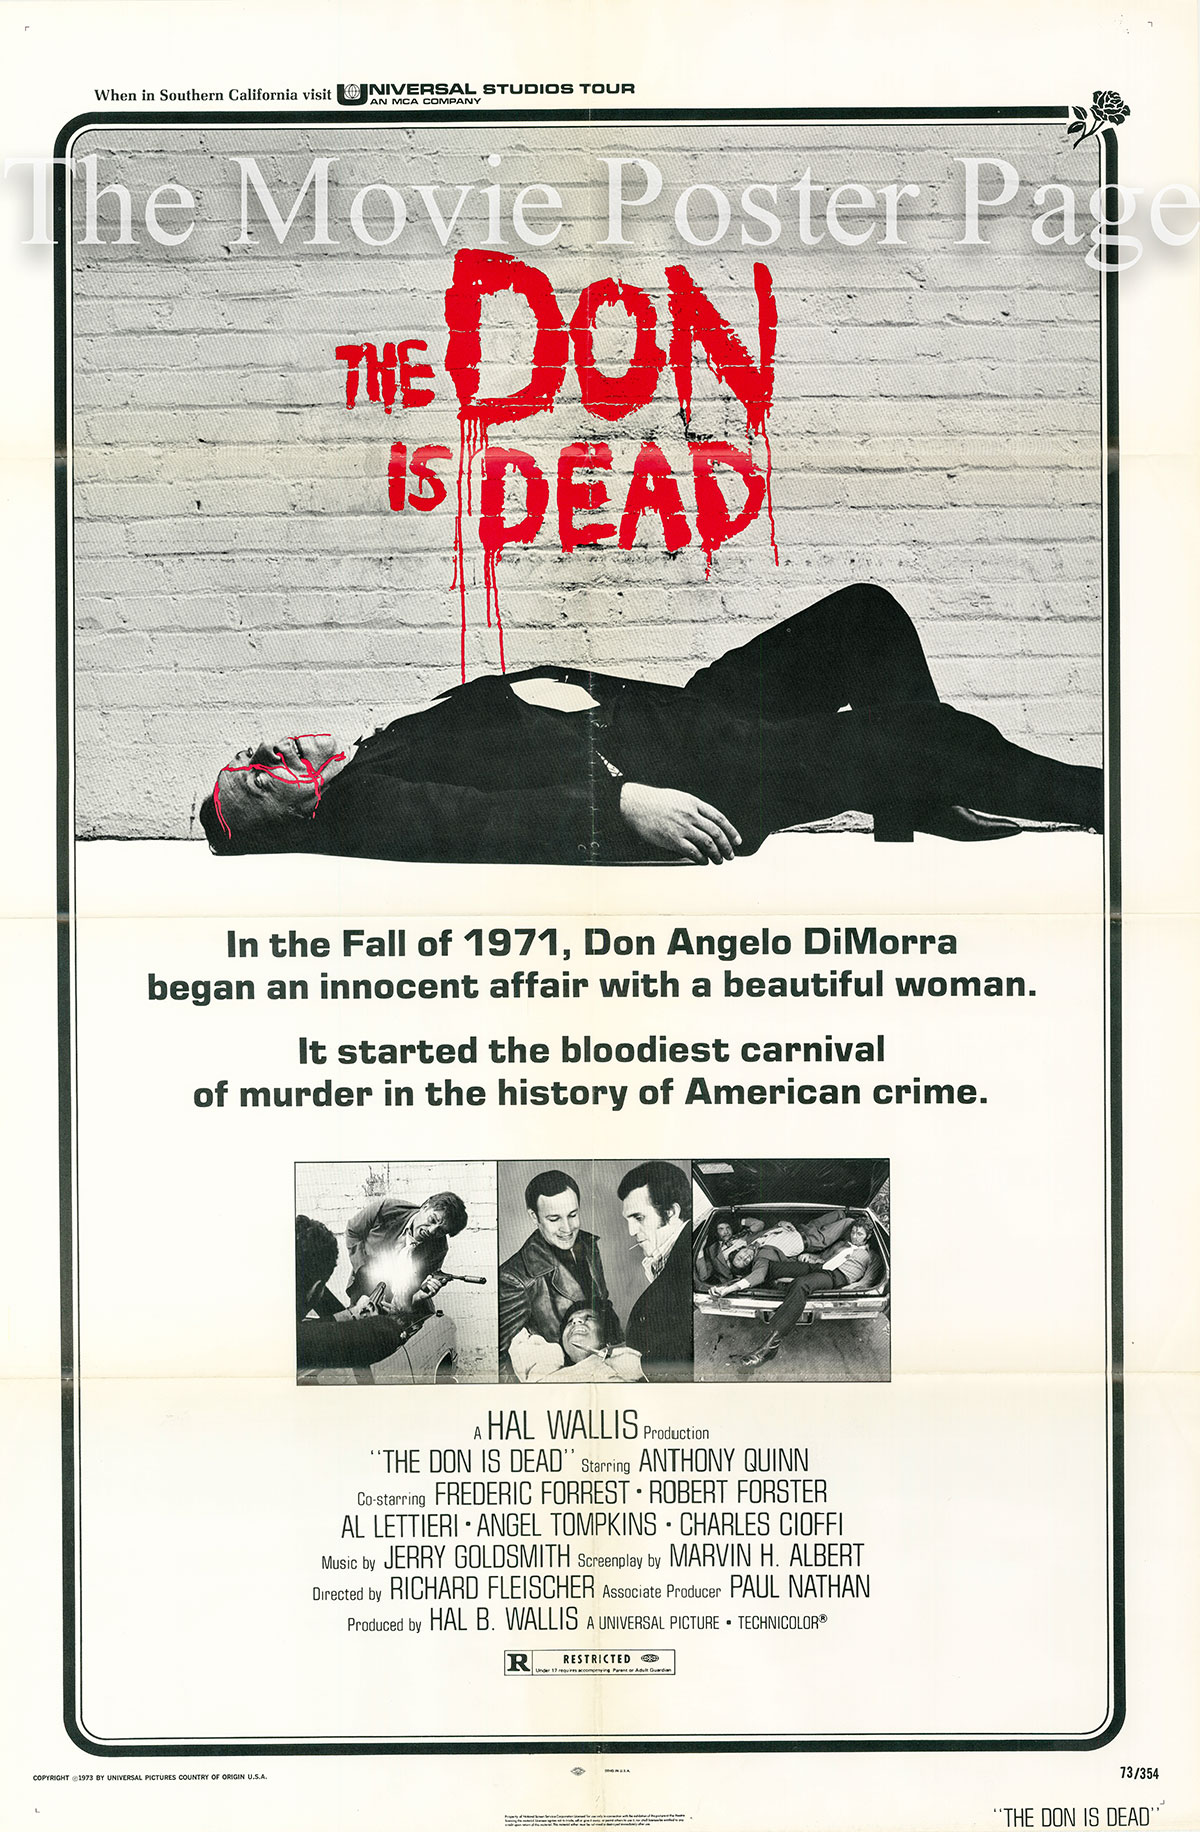 Pictured is a US one-sheet poster for the 1973 Richard Fleischer film The Don is Dead starring Anthony Quinn as Don Angelo DiMorra.